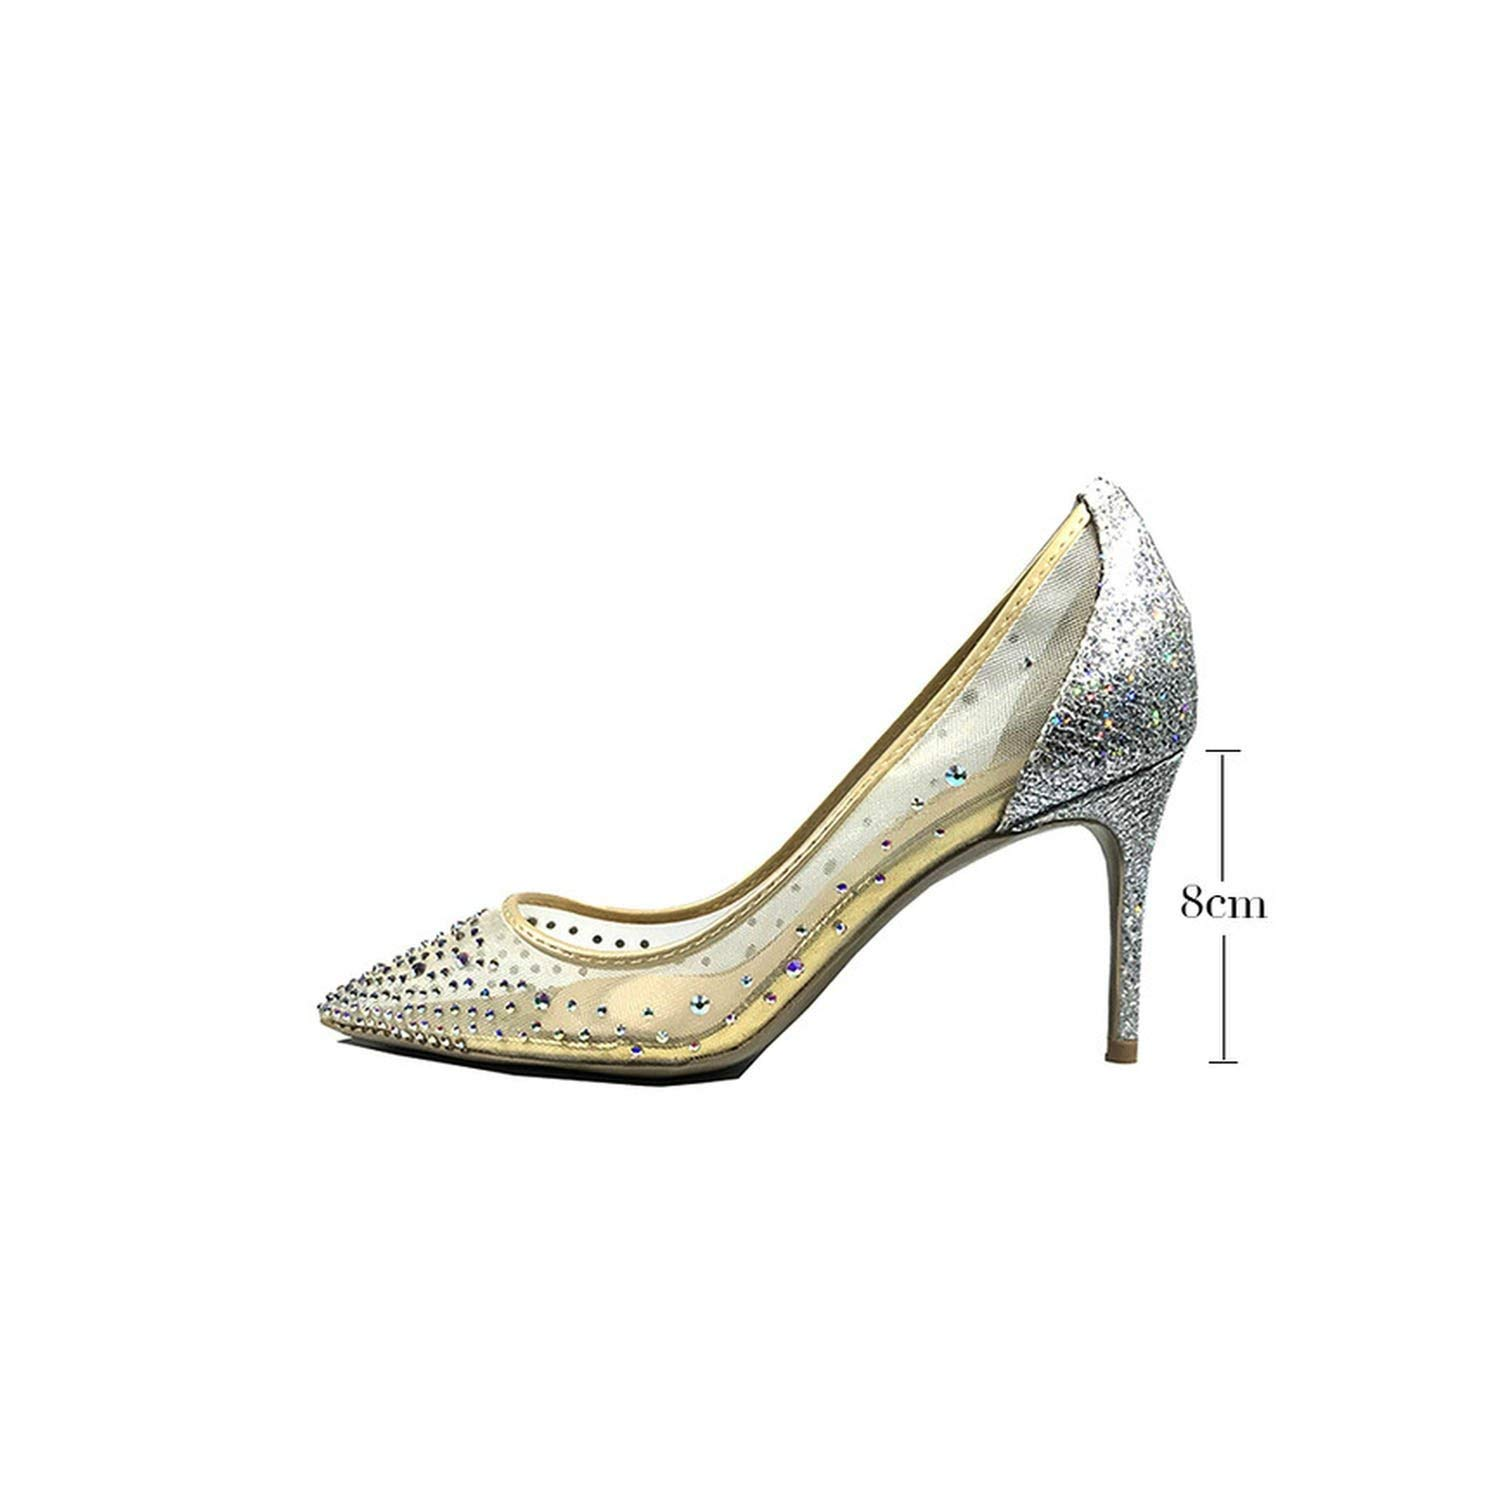 Silver 8cm pleasantlyday Sexy shoes Woman Pointed Toe Heels Crystal Bling Silver High Heels shoes